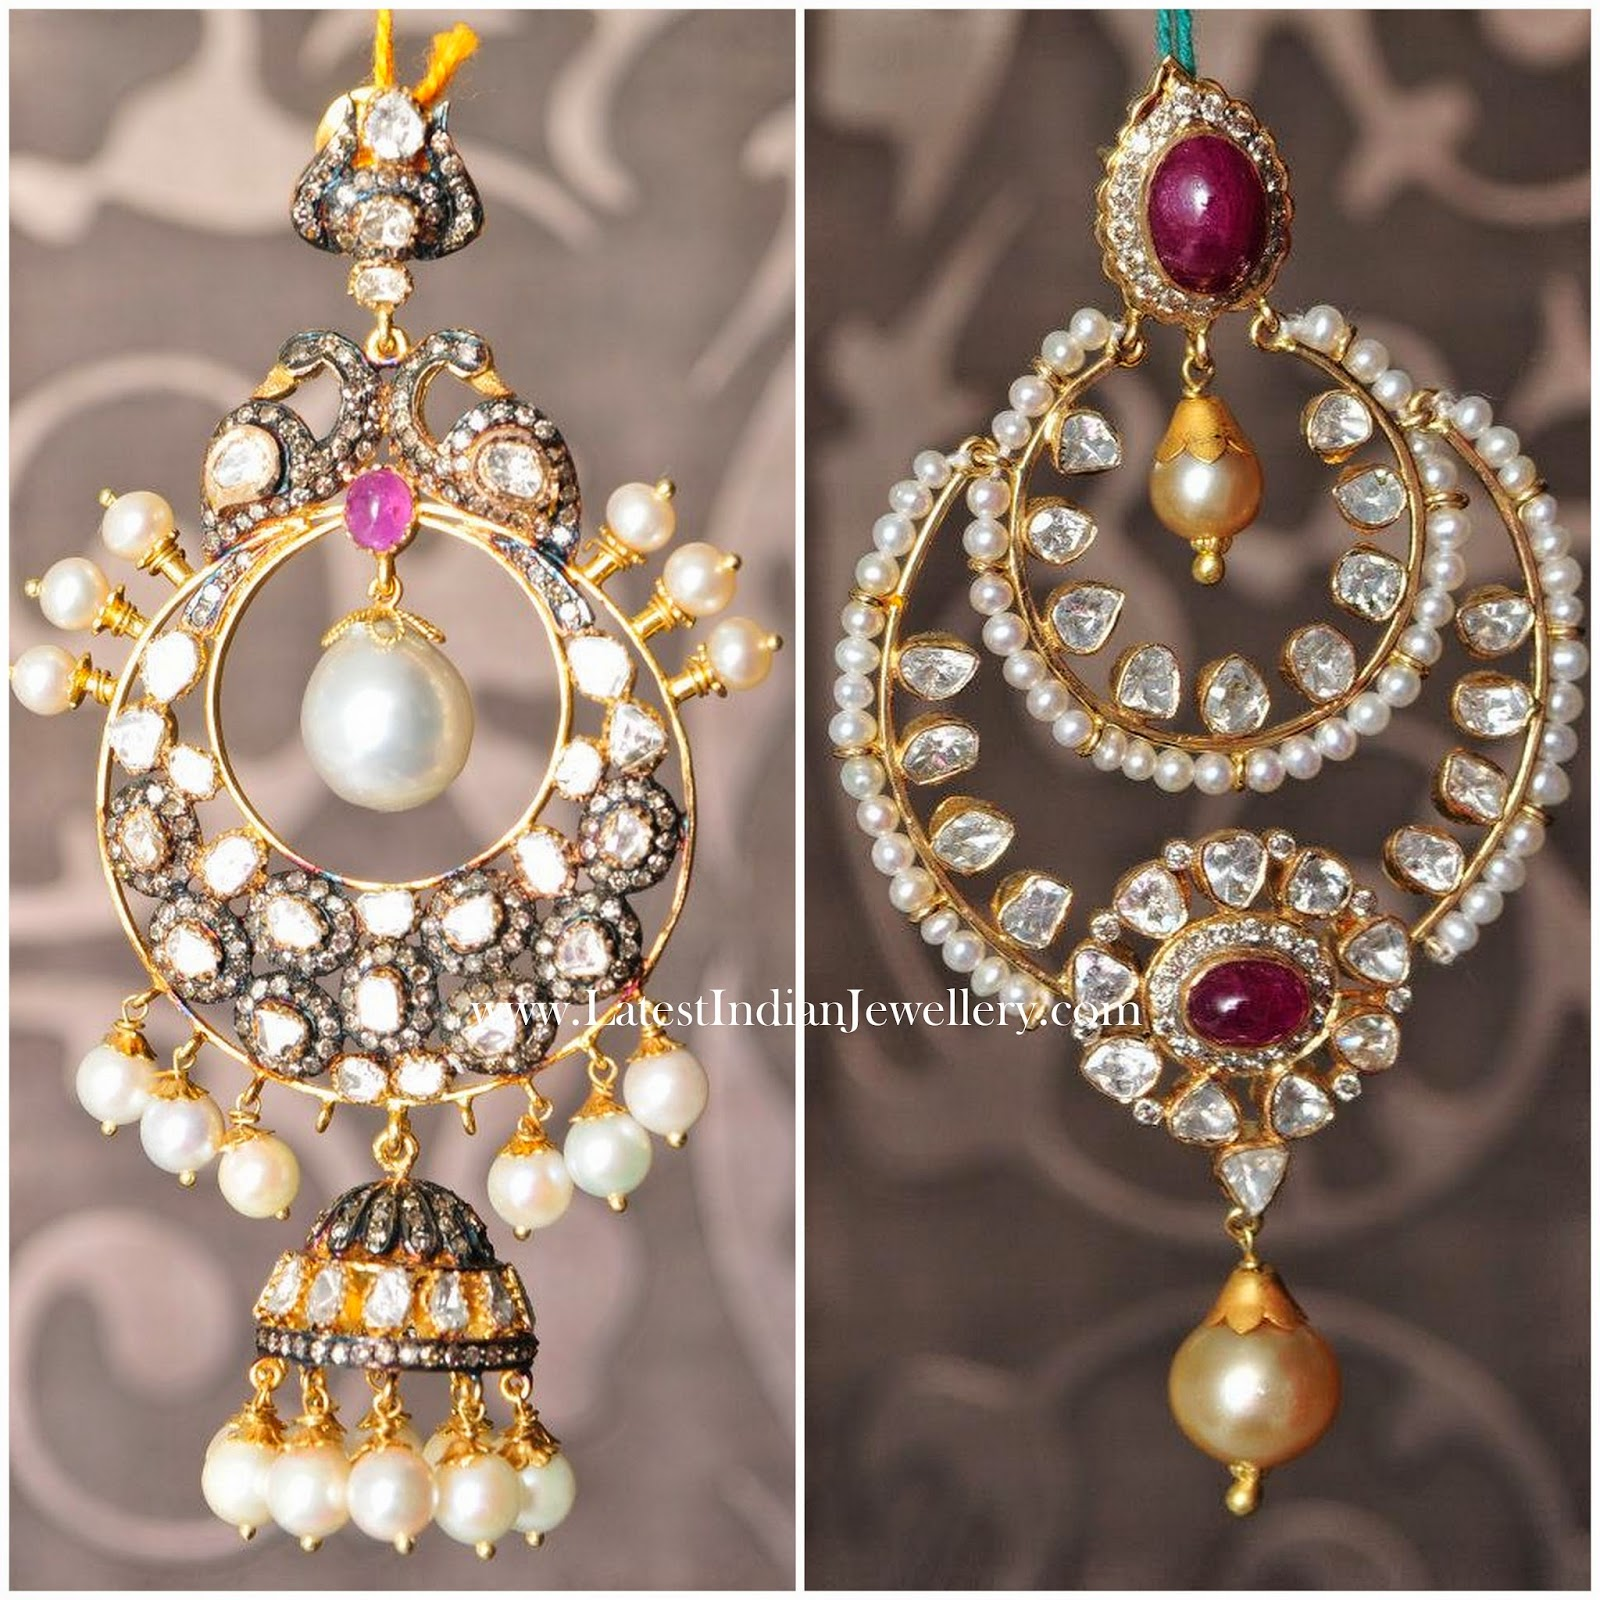 Large Polki Chand Bali Earrings